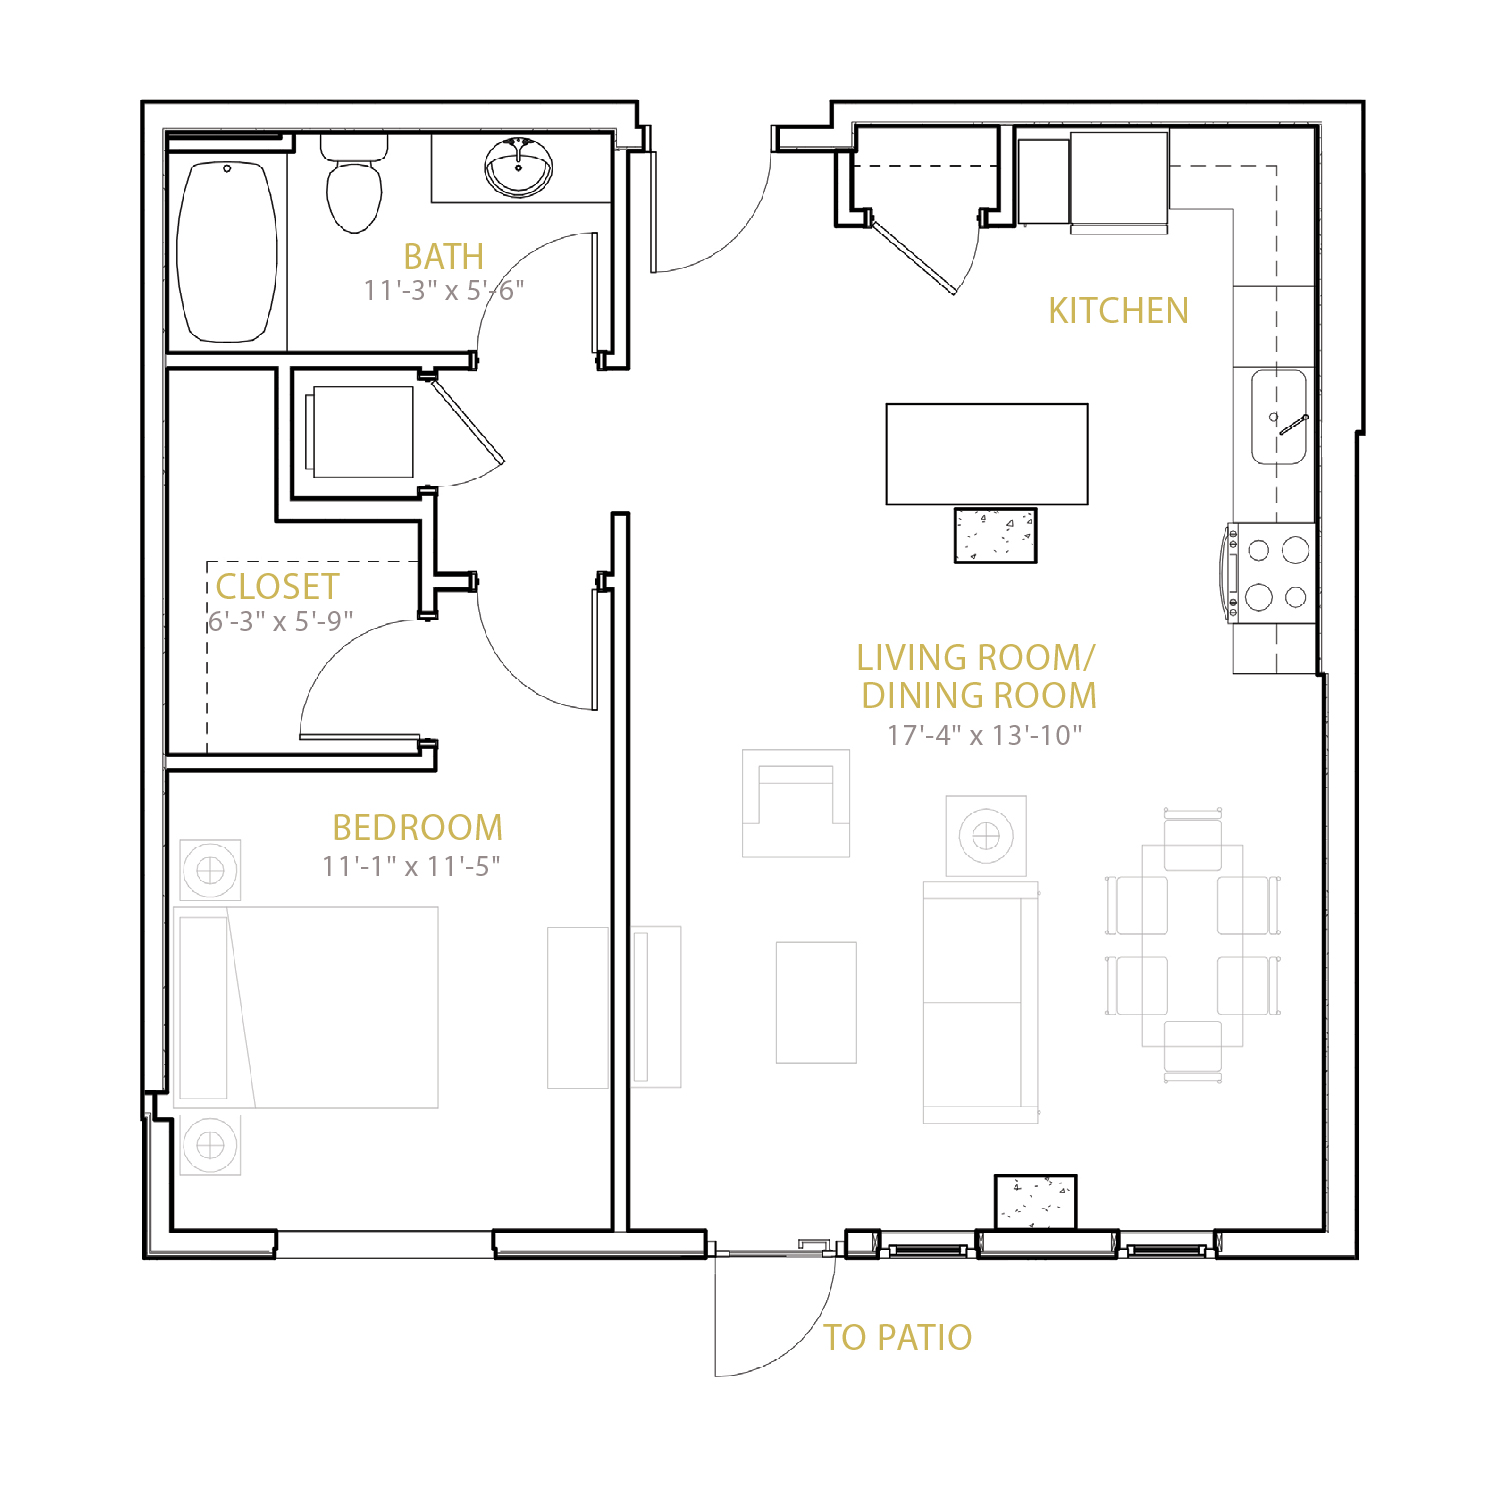 B Seven floor plan diagram. One bedroom, one bathroom, and an open kitchen and living area.